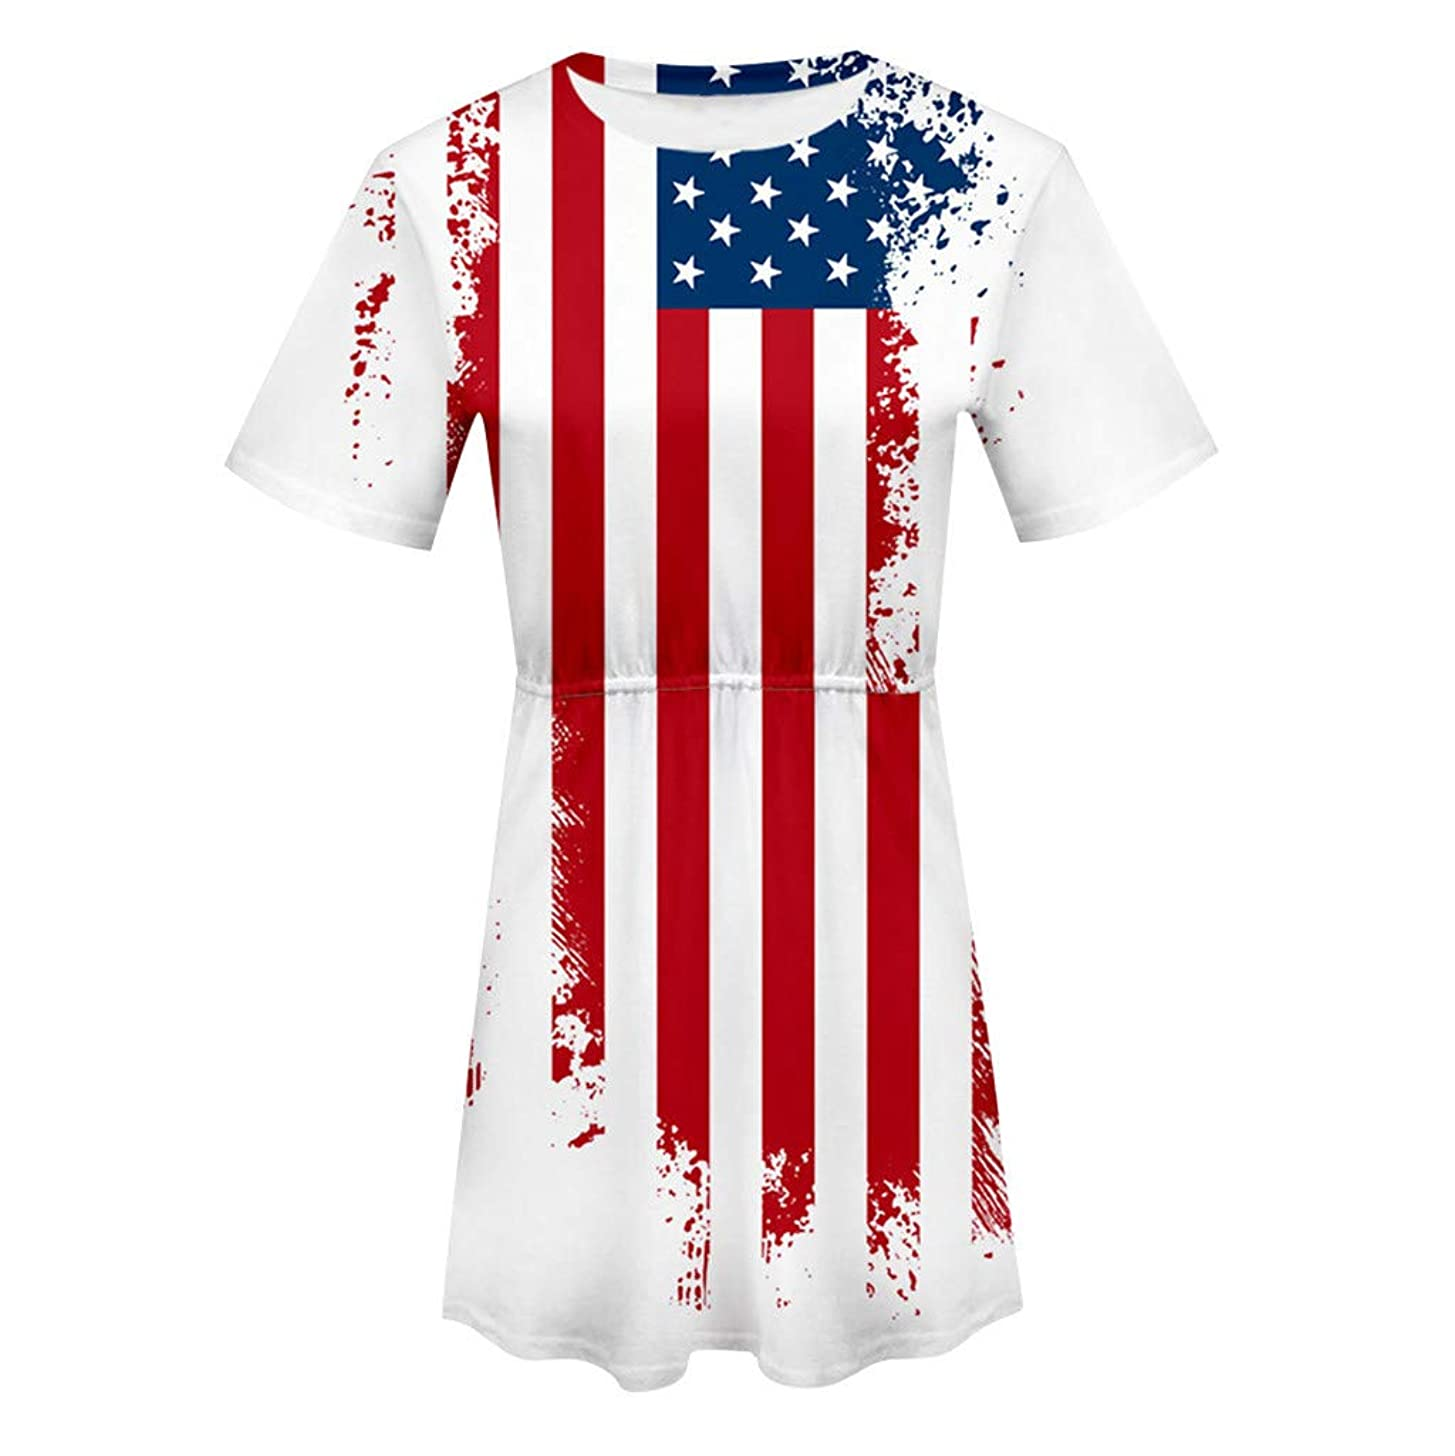 Midress Women's Short Sleeve Casual Tunic Elastic Waist T-Shirt Dress American Flag USA Short Sleeve O Neck Print Ladies Dress